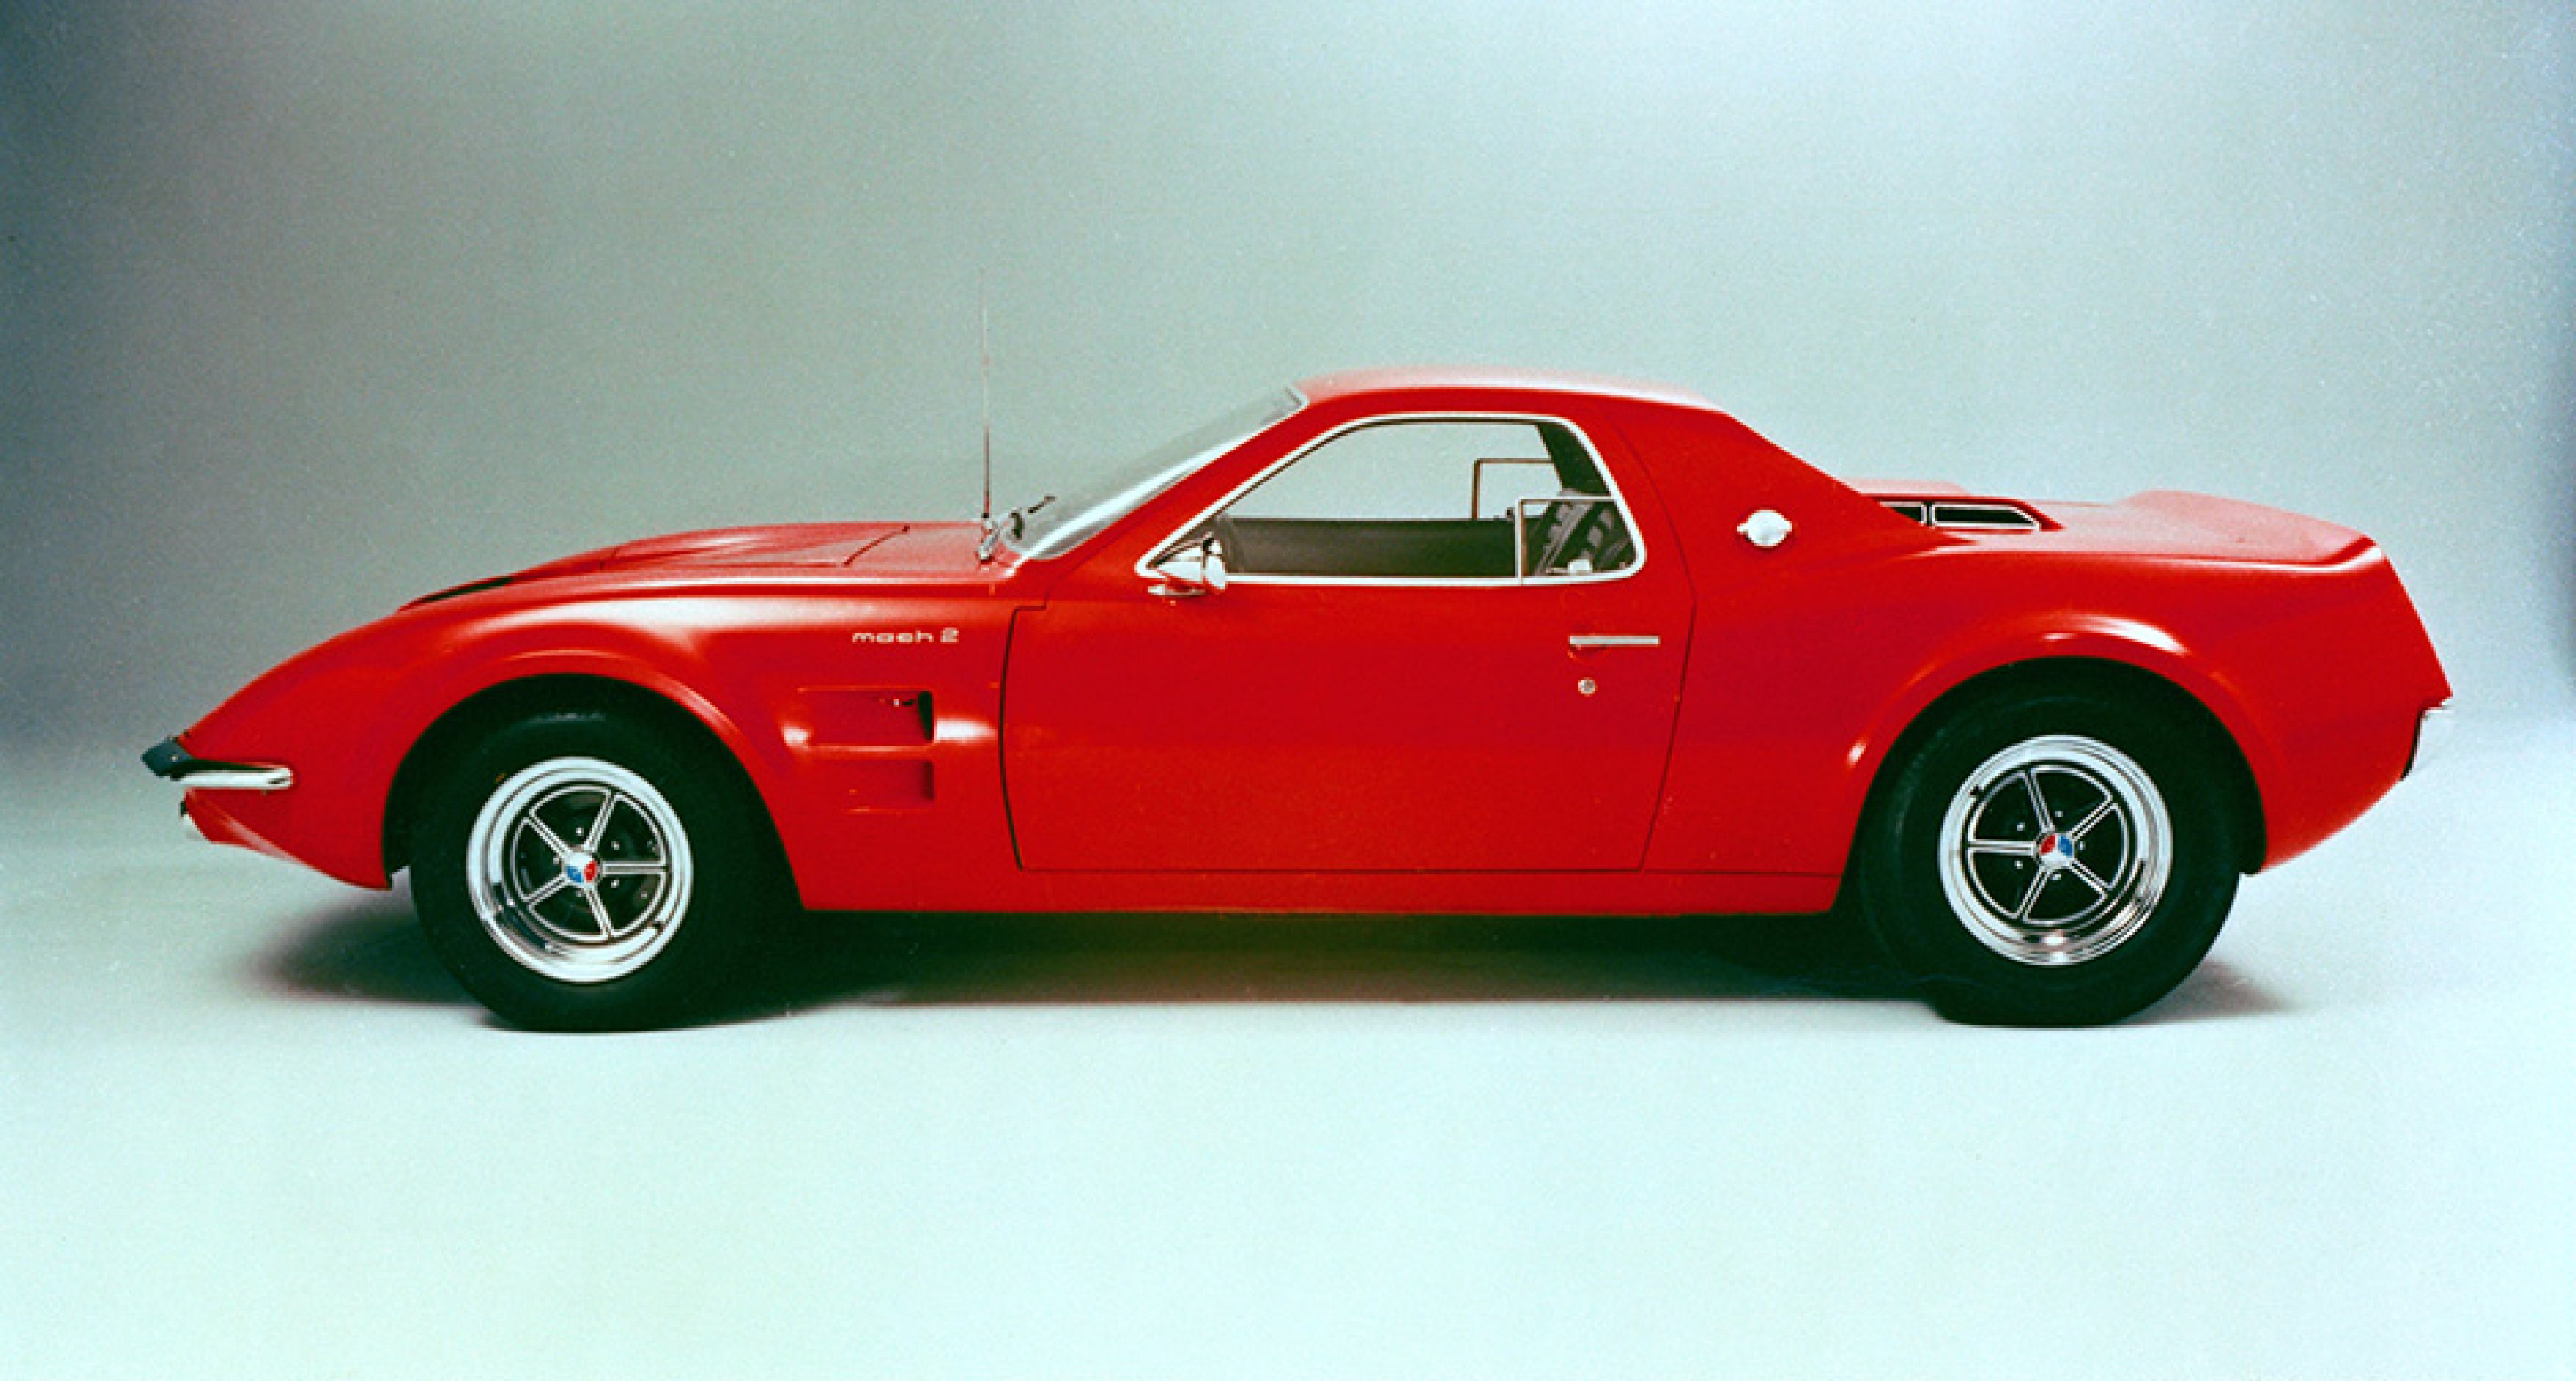 Another mid-engined Mustang, this time the 1966 Mach 1 Concept